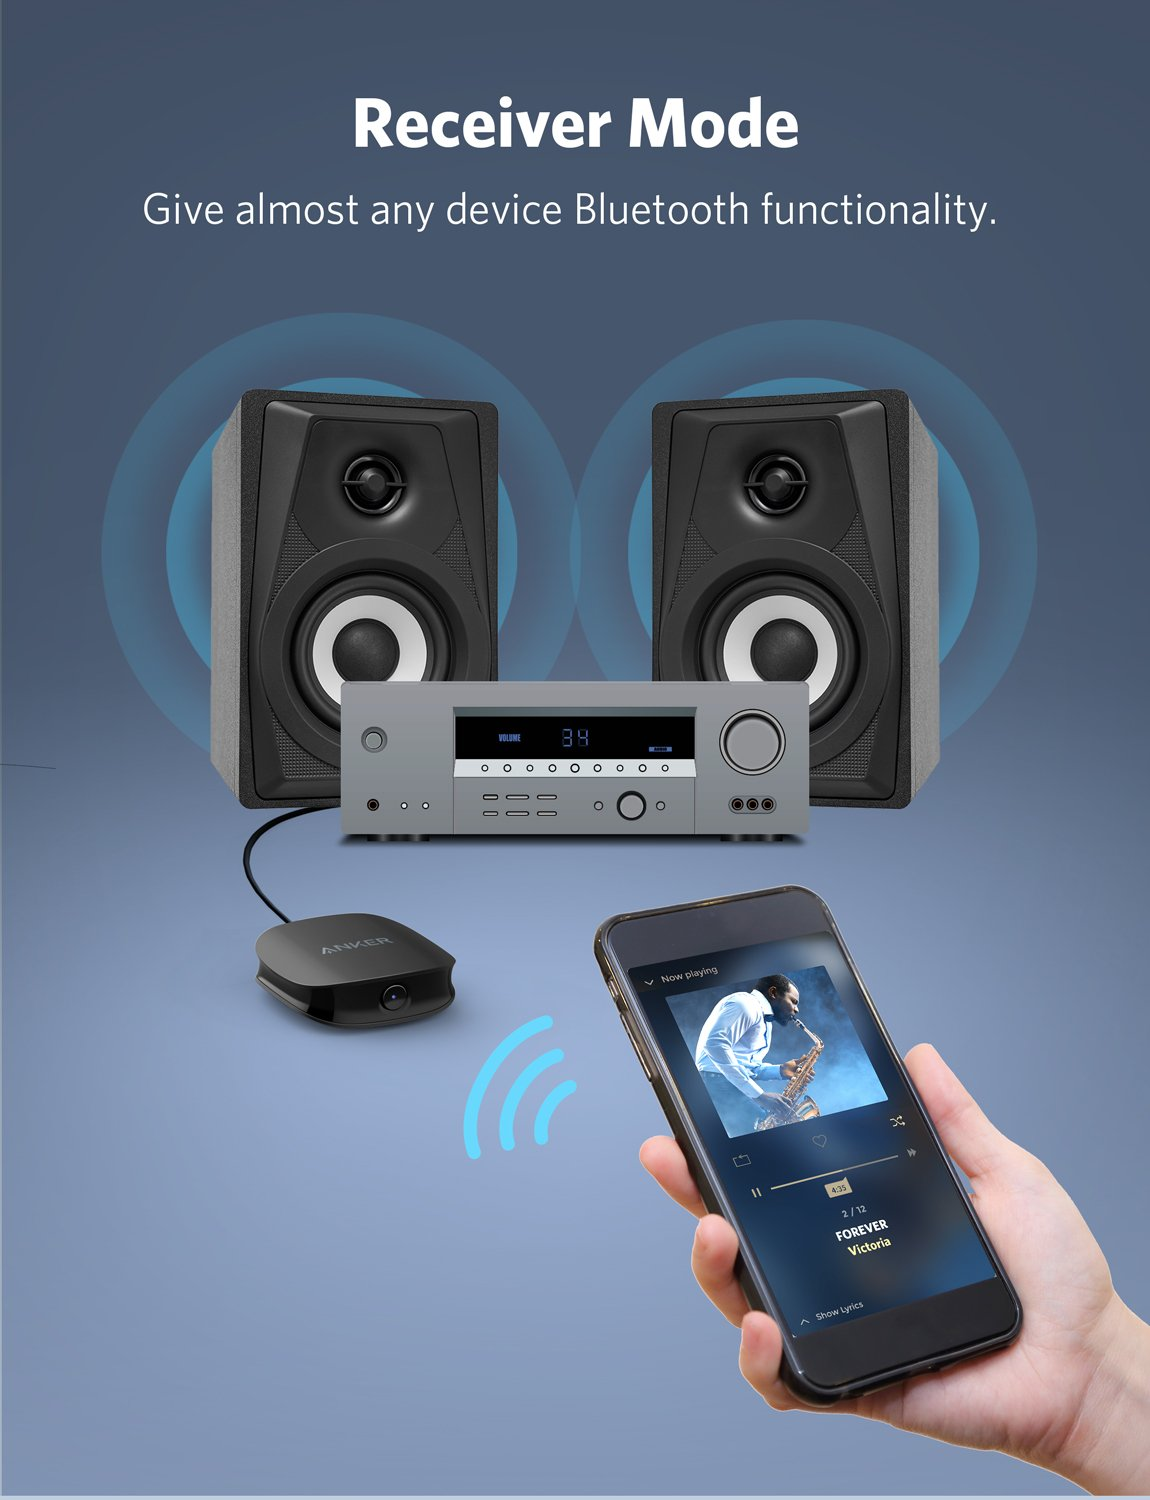 Anker Soundsync A3341 Bluetooth 2-in-1 Transmitter and Receiver, with Bluetooth 5, HD Audio with Lag-Free Synchronization, and AUX/RCA/Optical Connection for TV and Home Stereo System by Anker (Image #3)